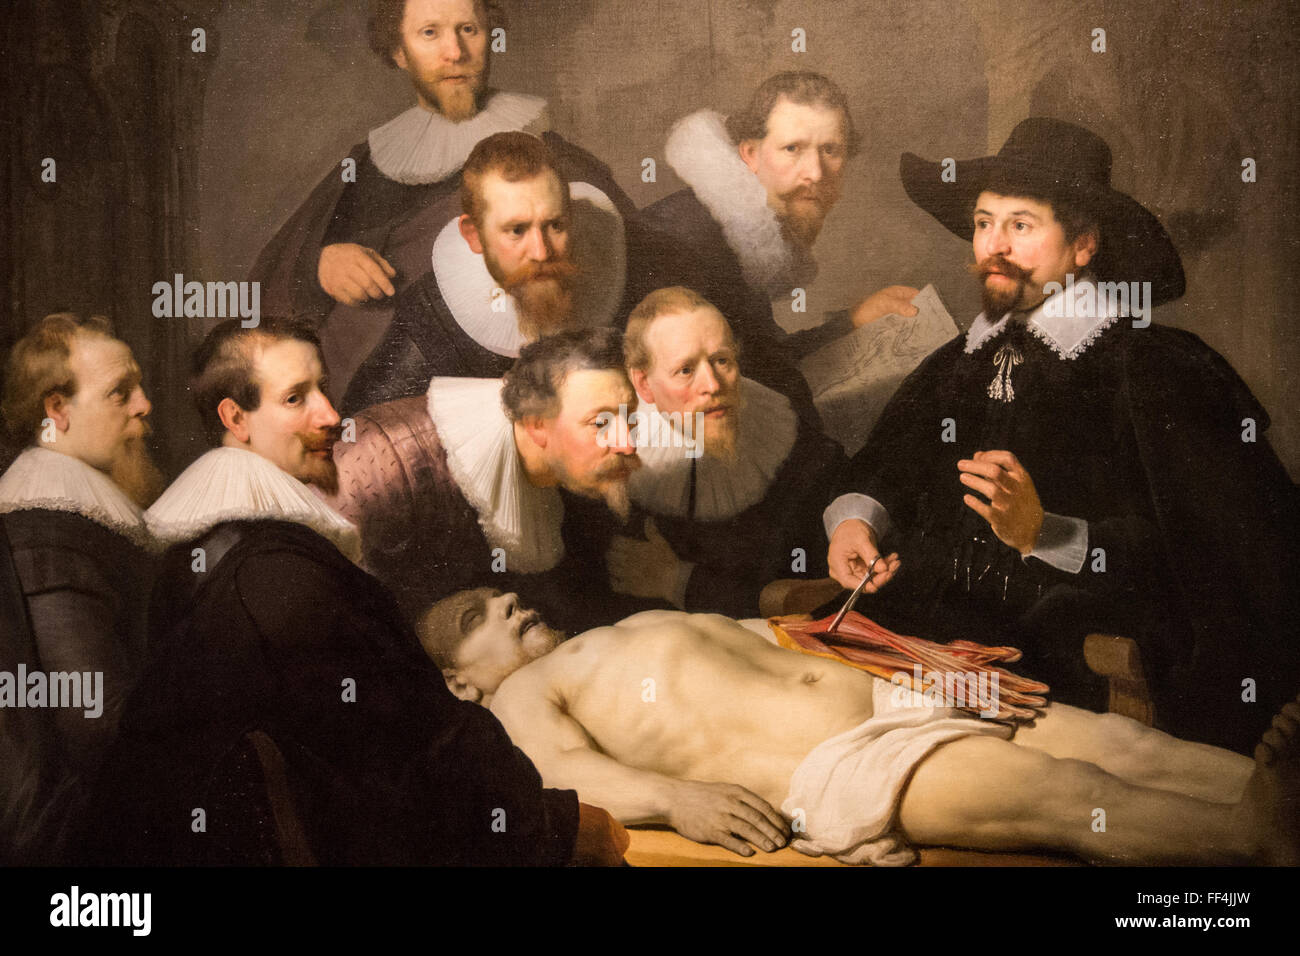 The Anatomy Lesson Of Dr Nicolaes Tulp Stock Photos & The Anatomy ...